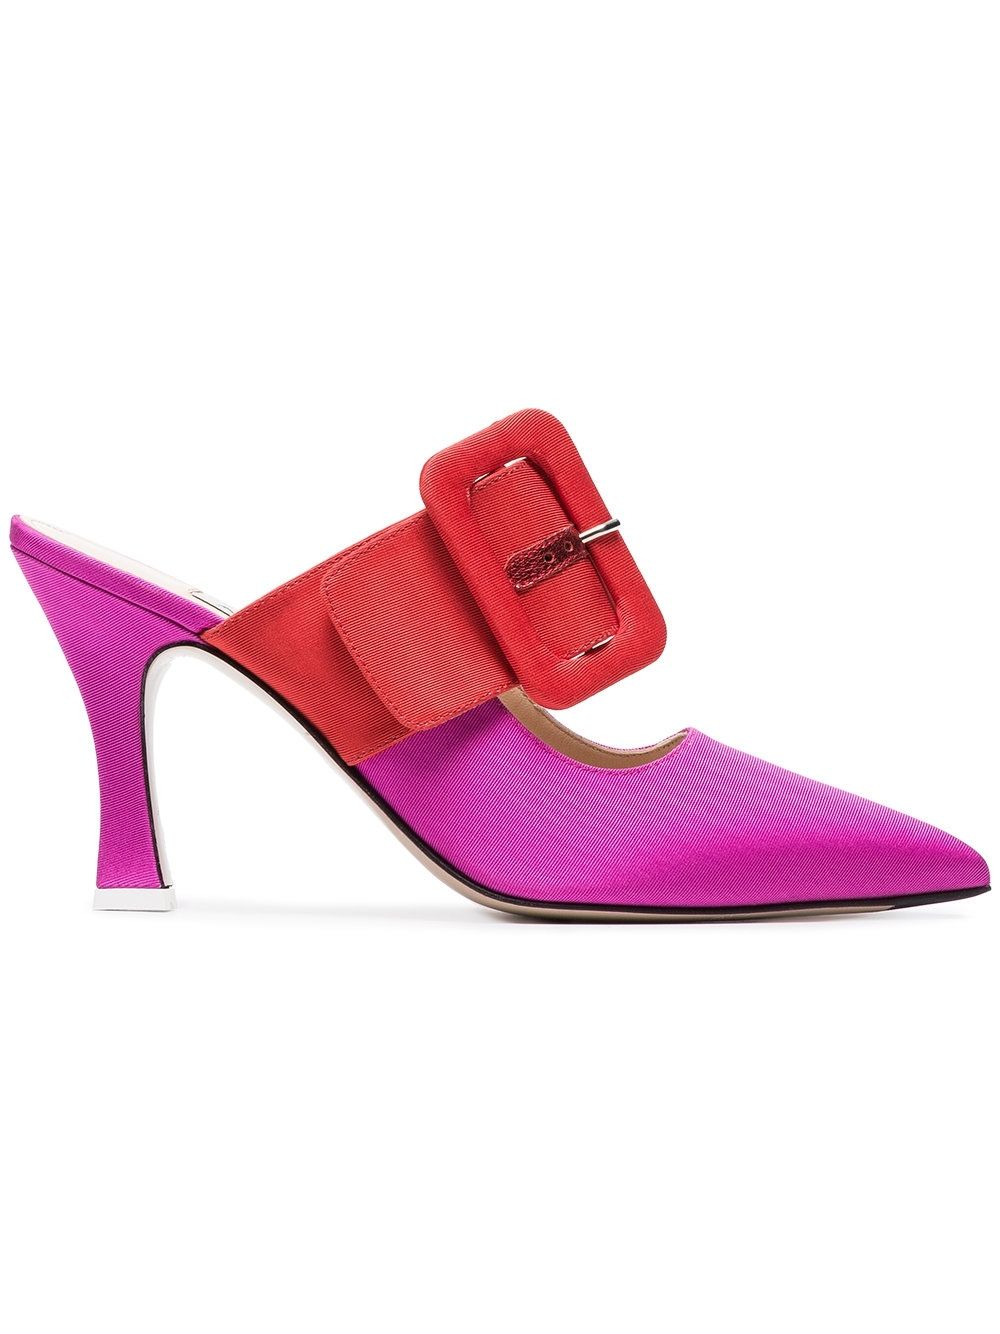 21be4727 Attico – Bi Color Large Buckle Mule in Red and Fuchsia   Kirna ...